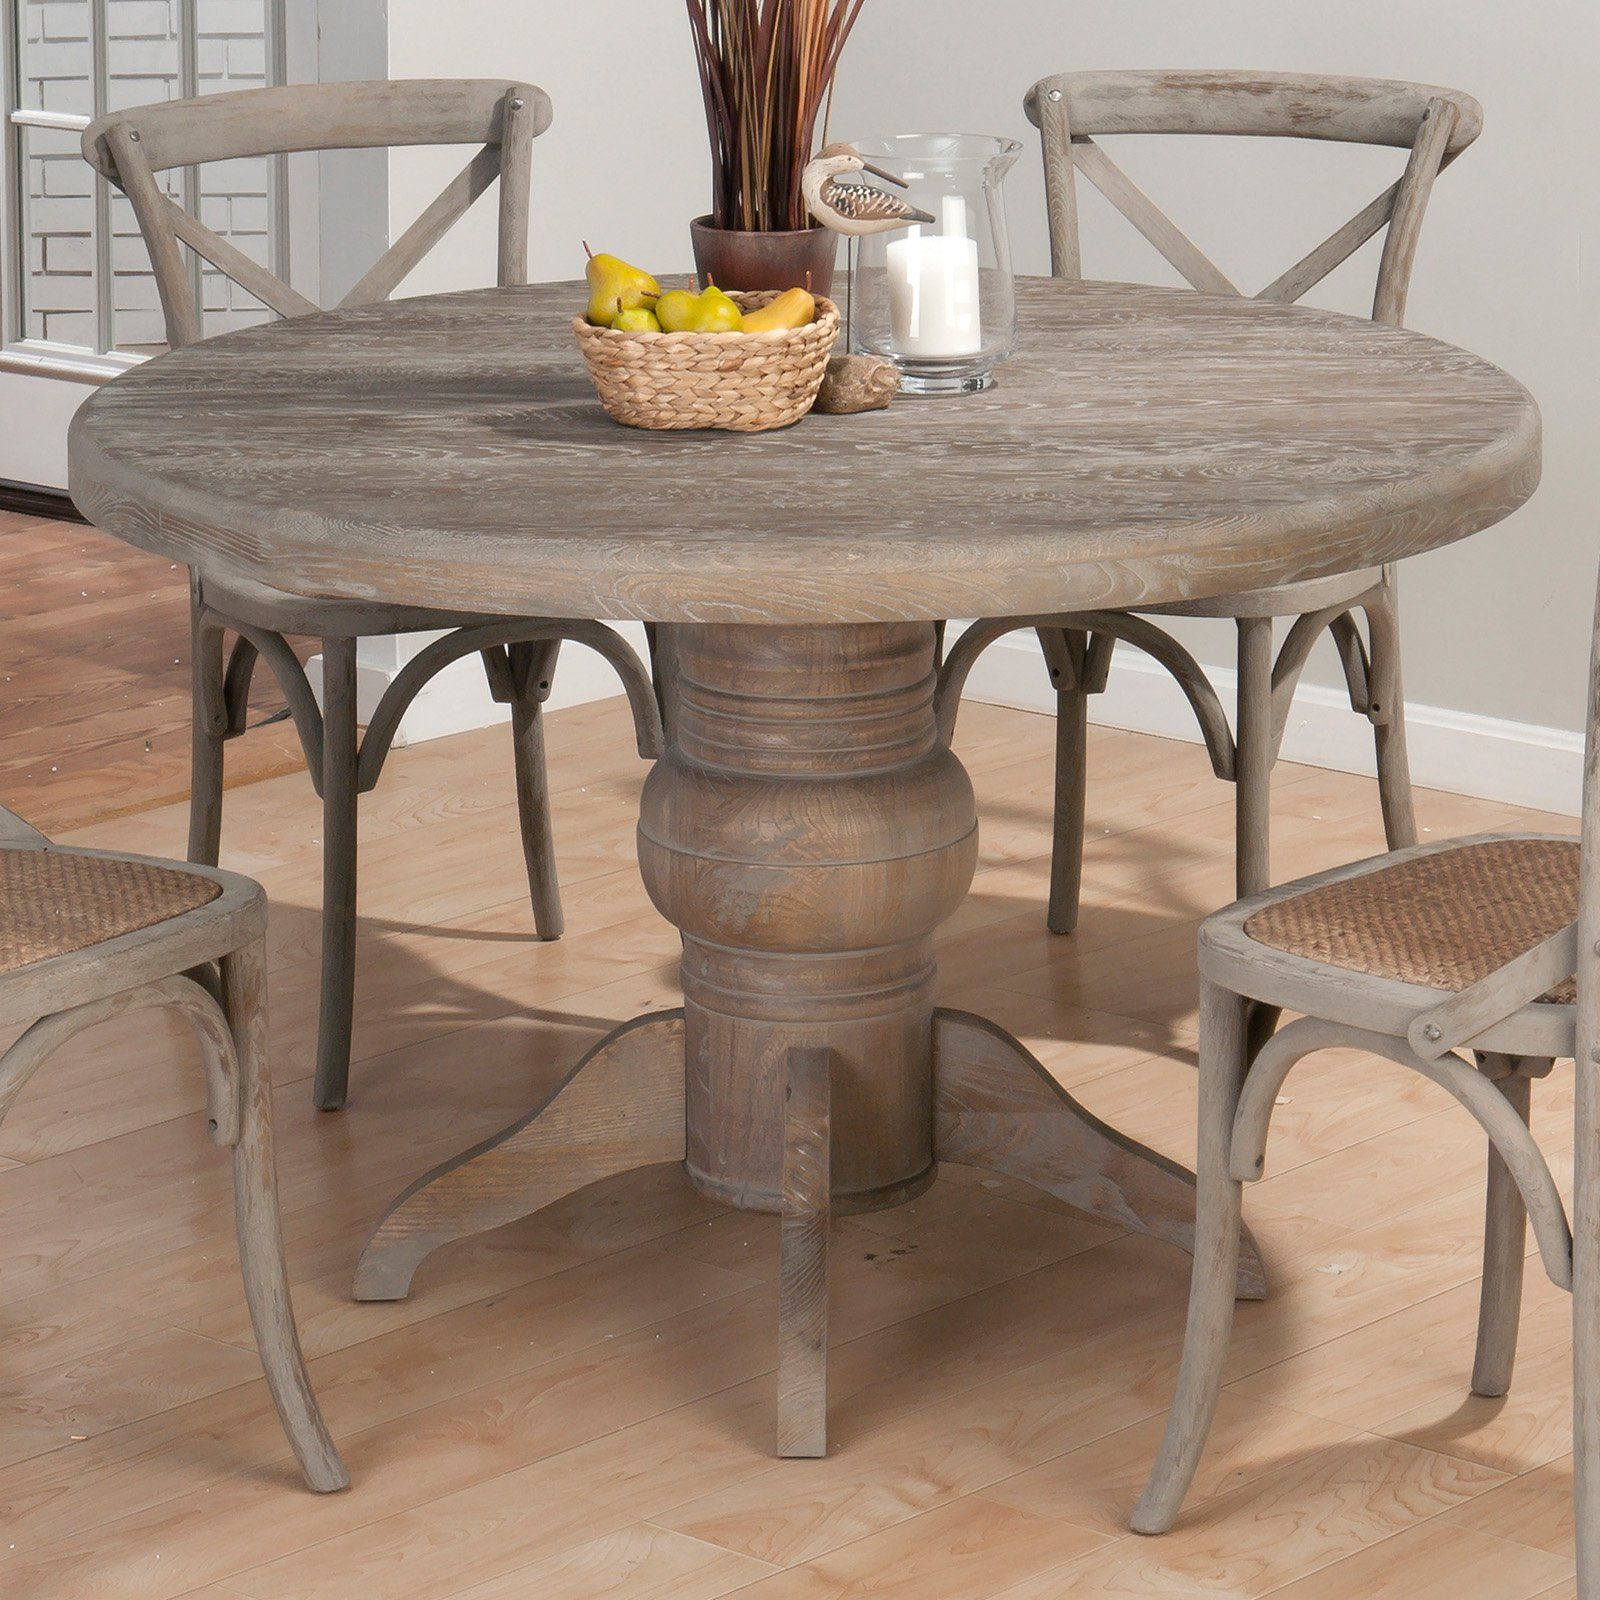 Pedestal Dining Table Set Jofran Booth Bay Round Pedestal Dining Table With A Distressed